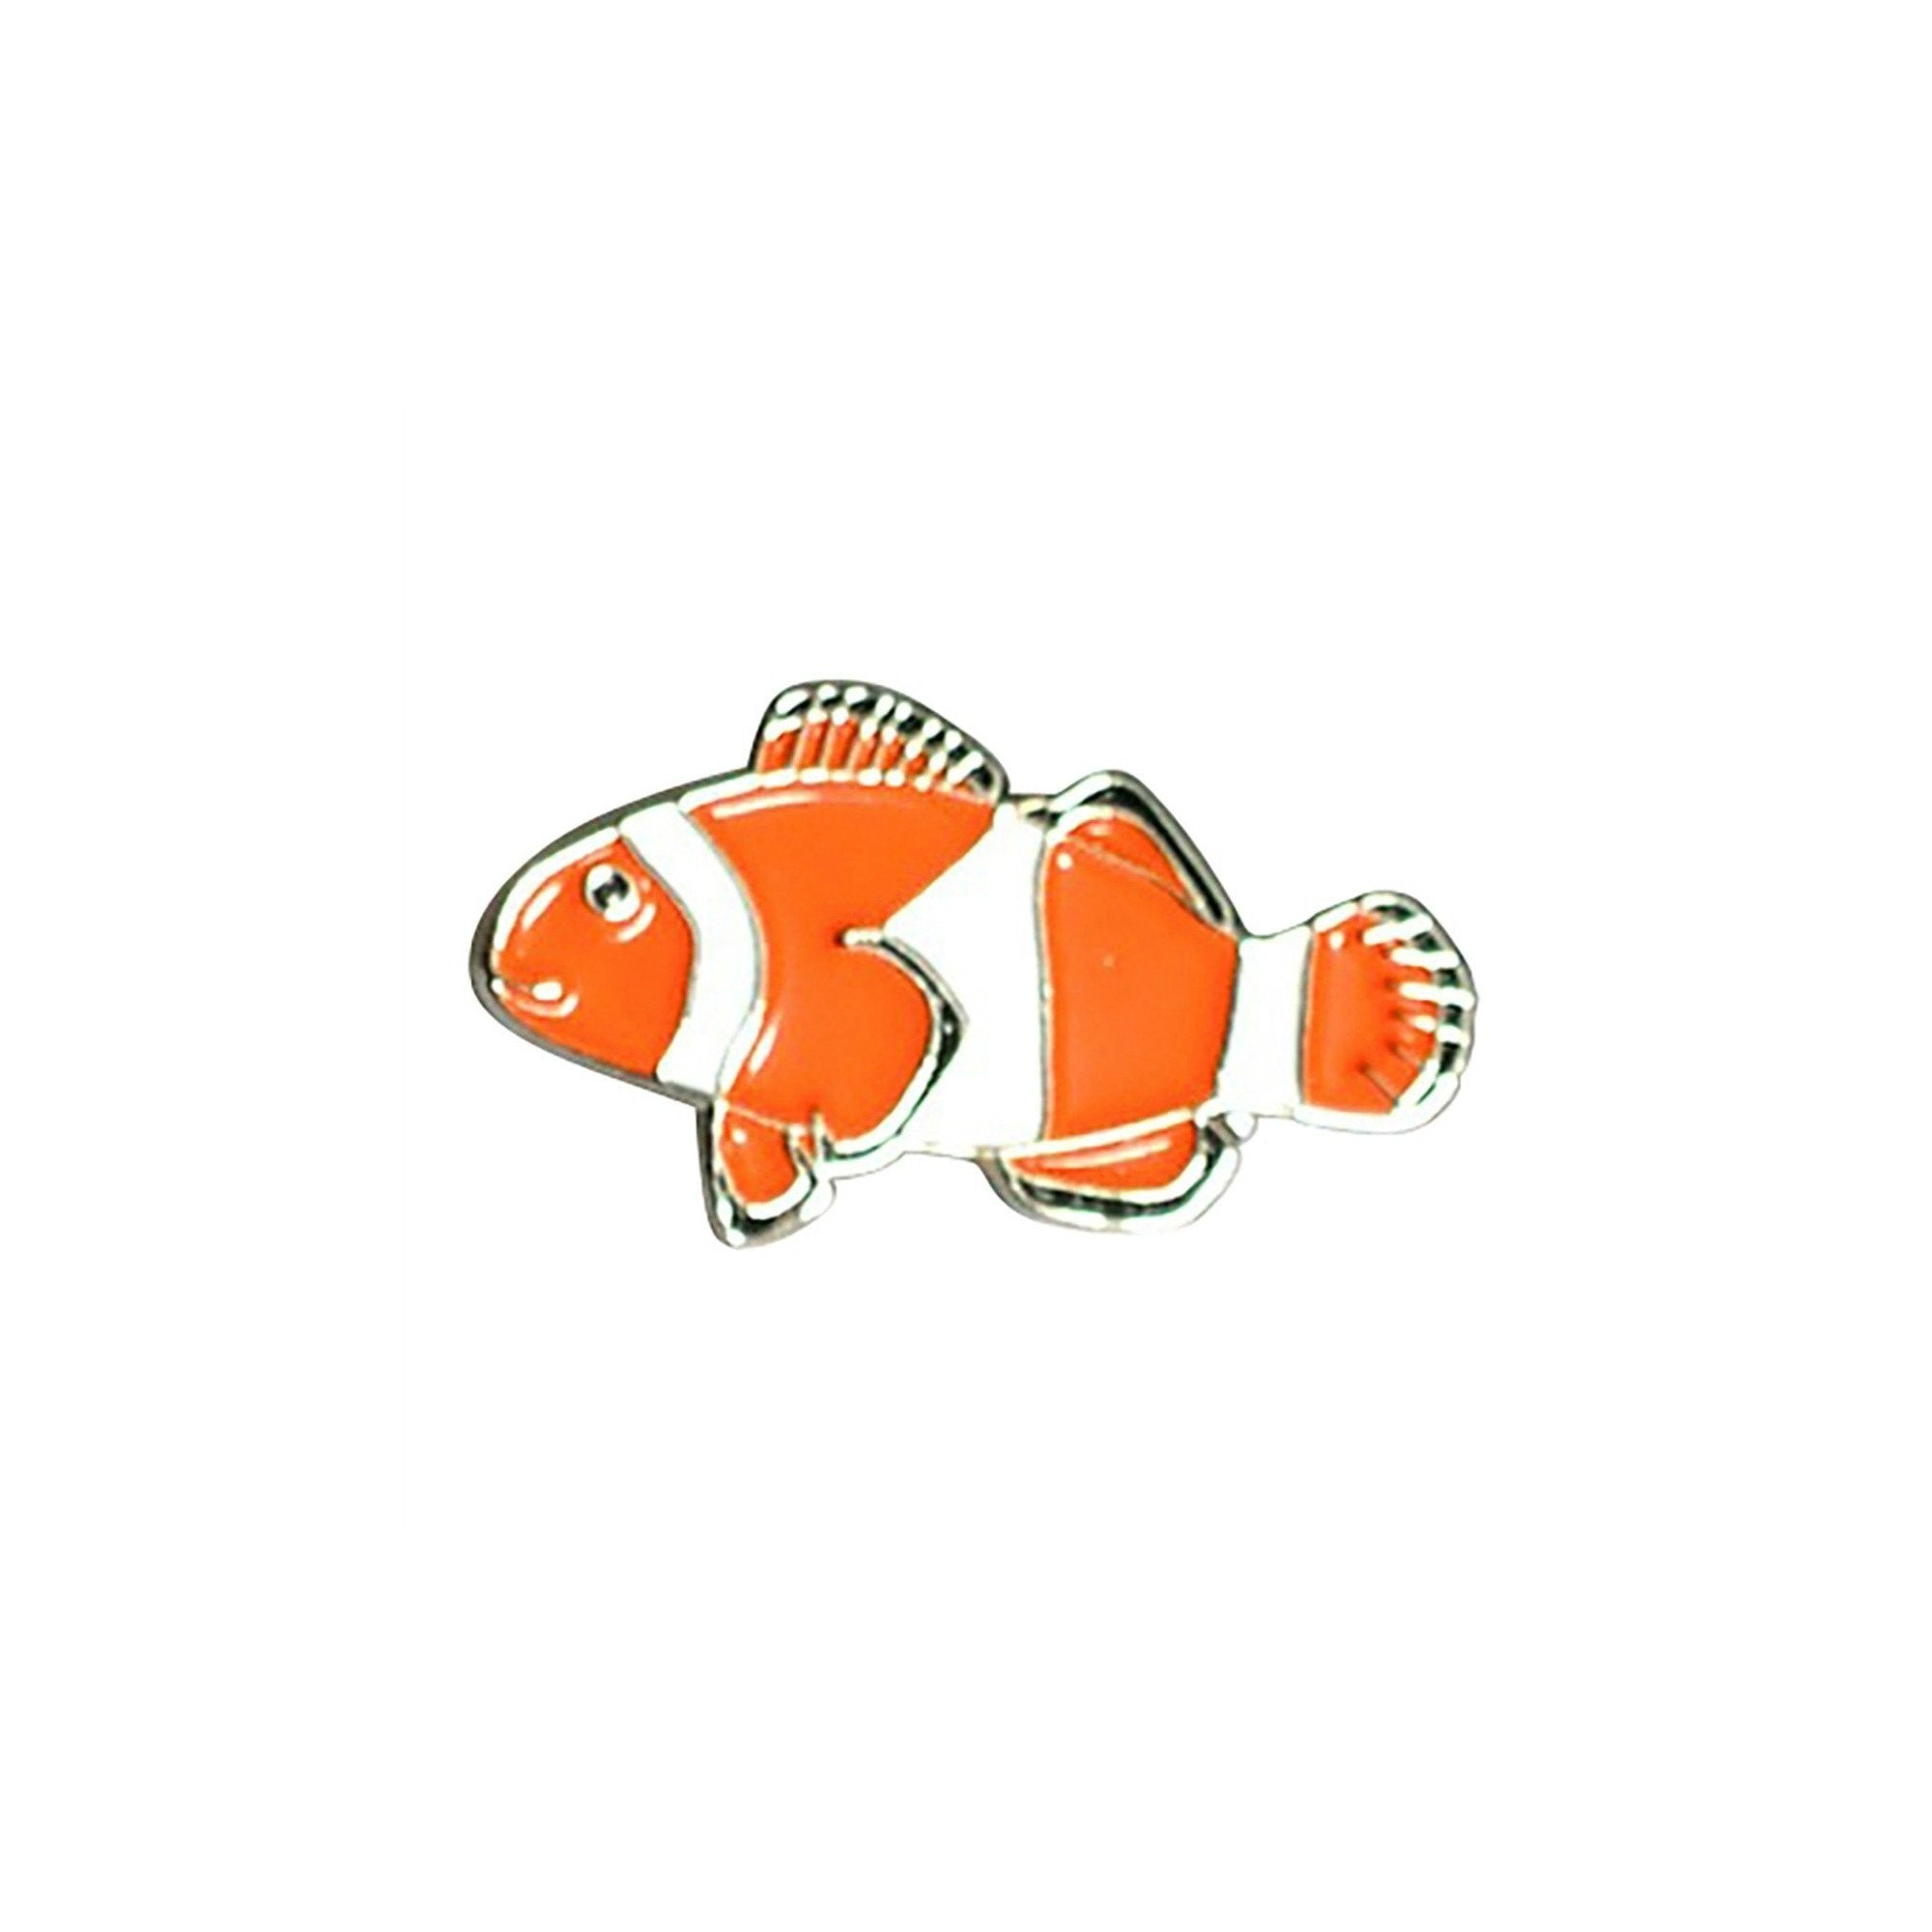 Clown Fish Enamel Lapel Pin Badge - Minimum Mouse